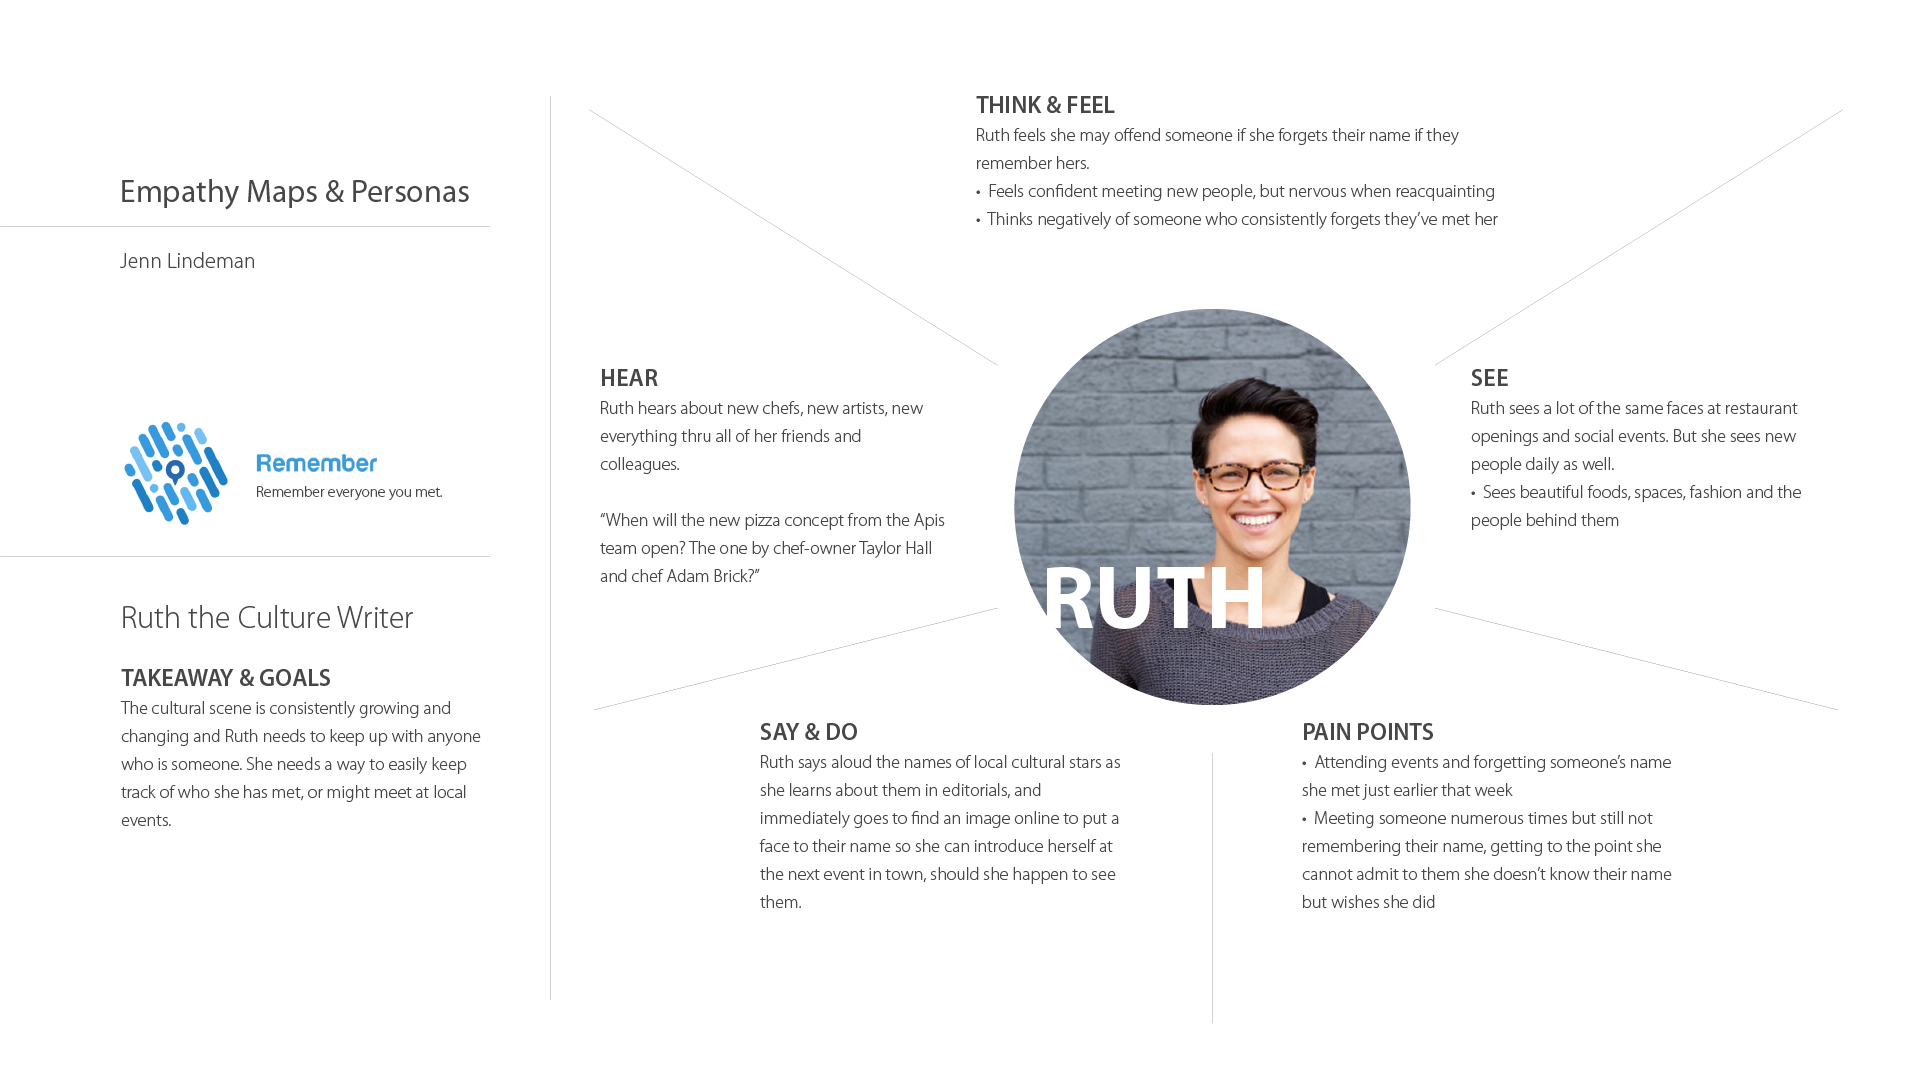 empathy-map-personas_ruth-empathy.png